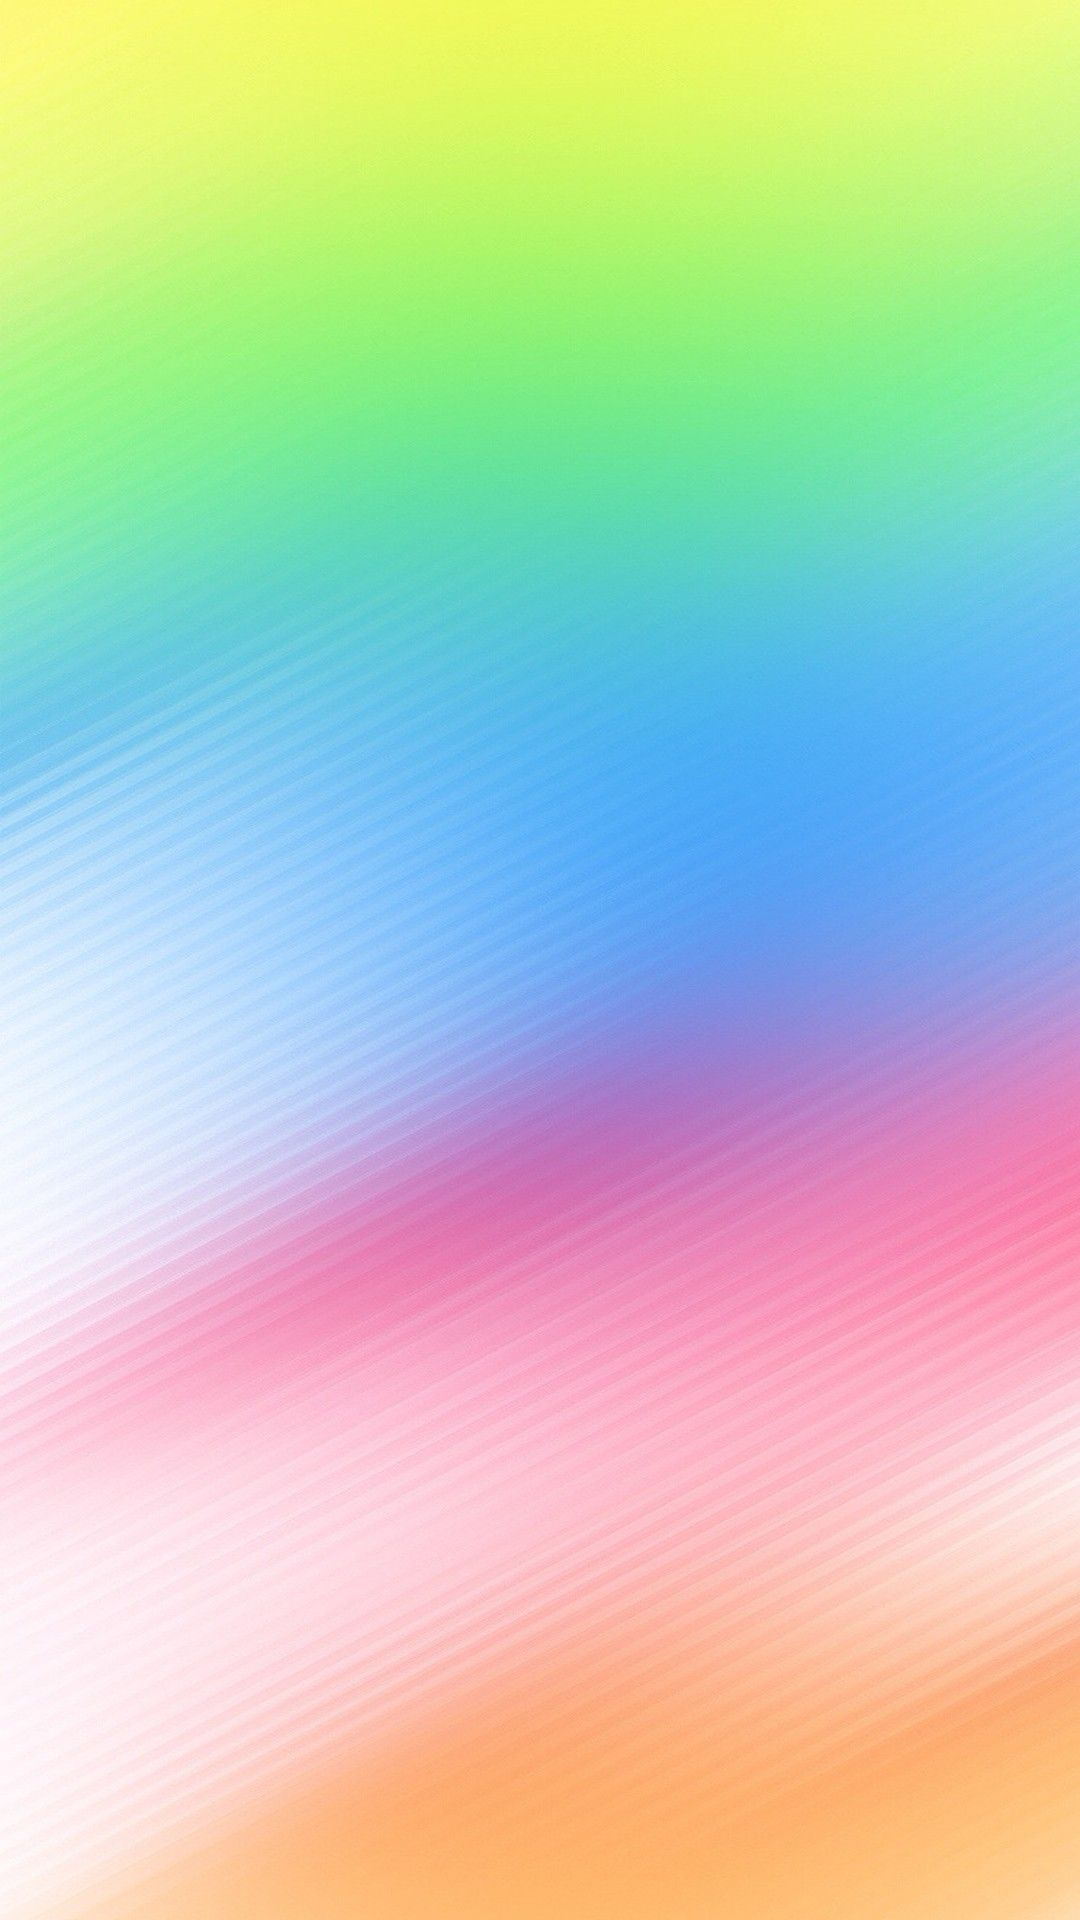 Colorful iOS 8 Stock 4K HD Android and iPhone Wallpaper